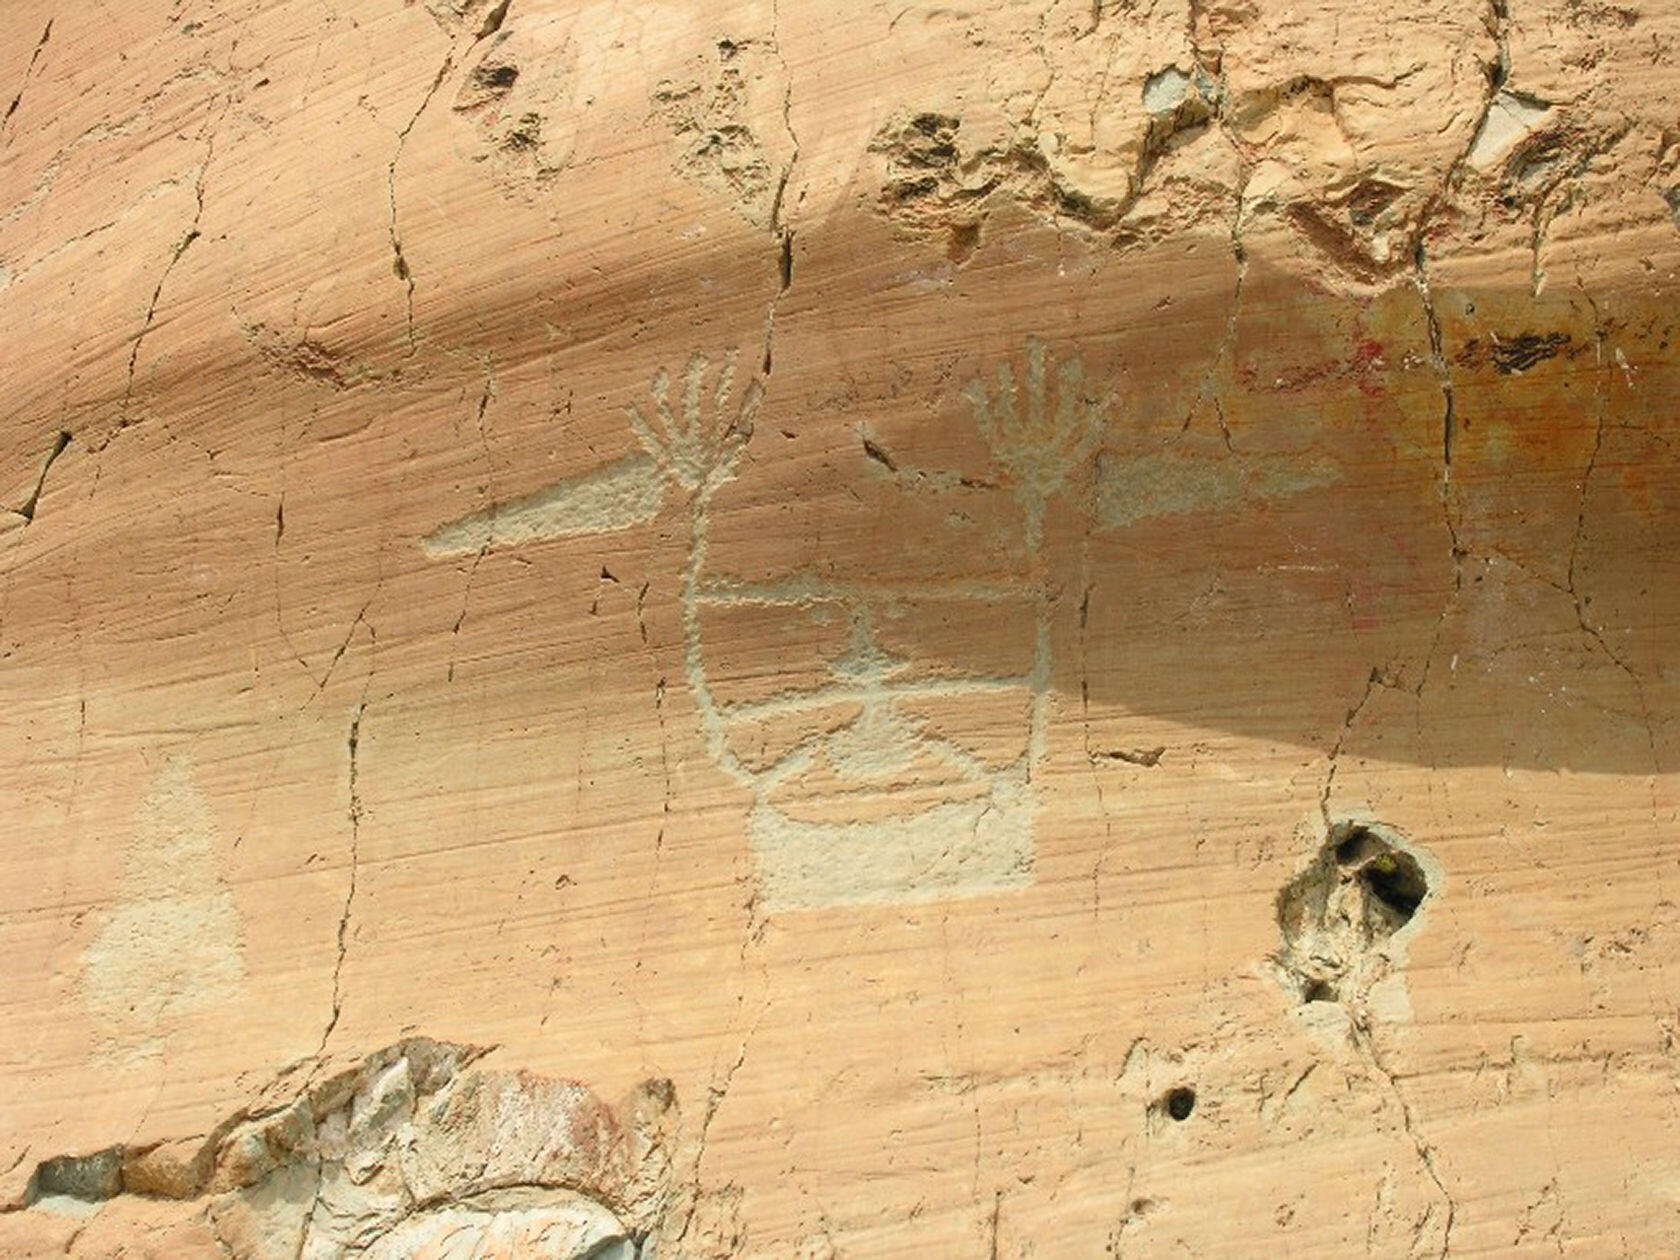 Primitive Rock Drawings Mercantour